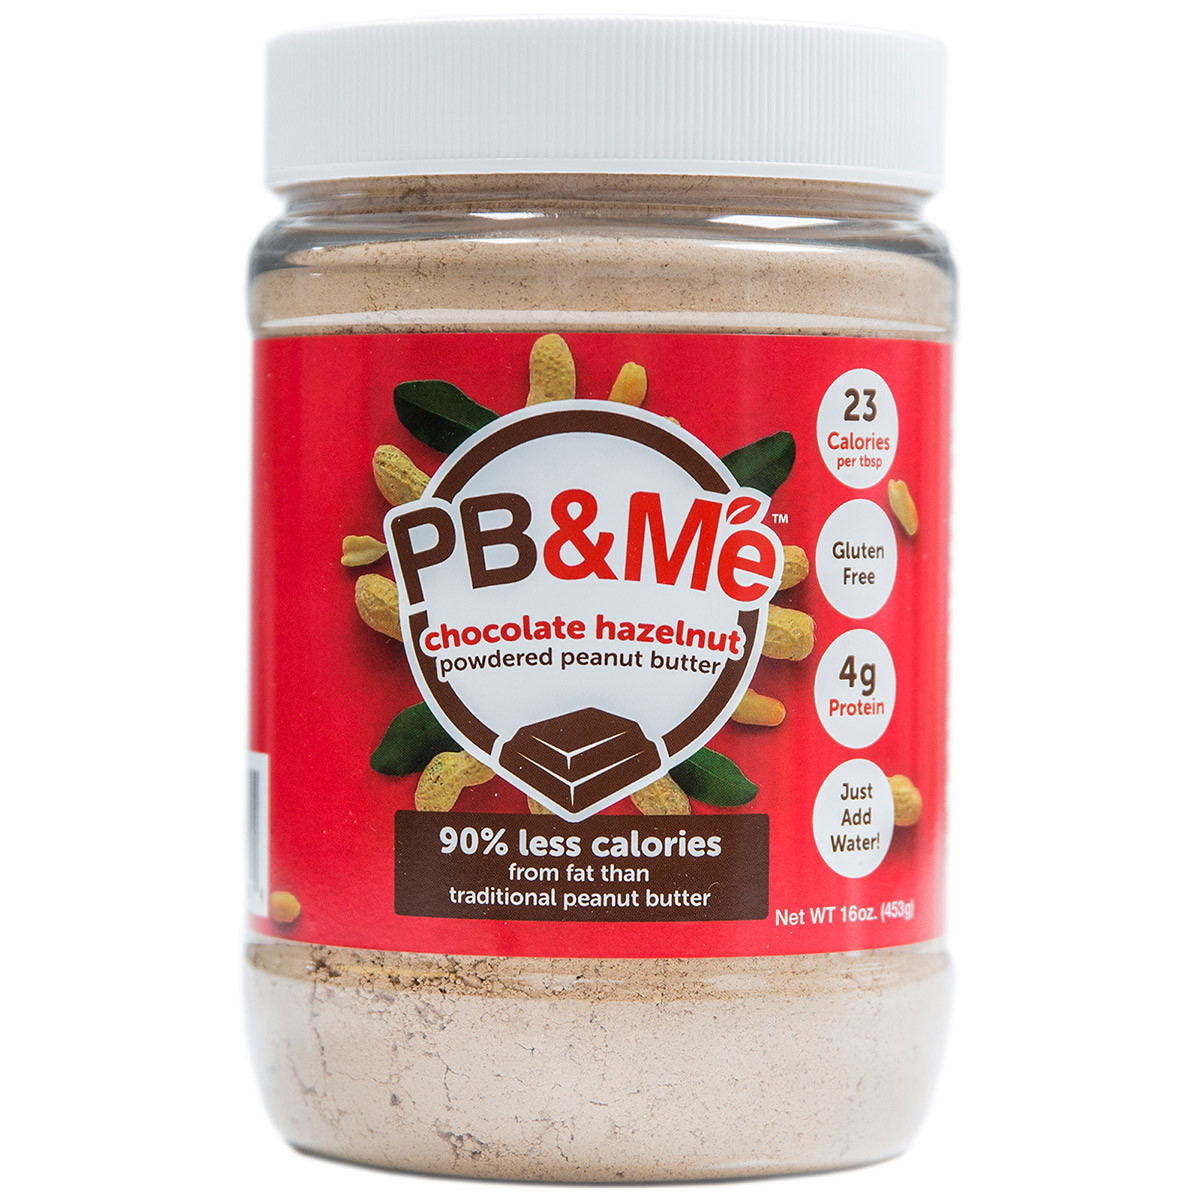 Kirkland Signature PB Powdered Peanut Butter Chocolate Ha...